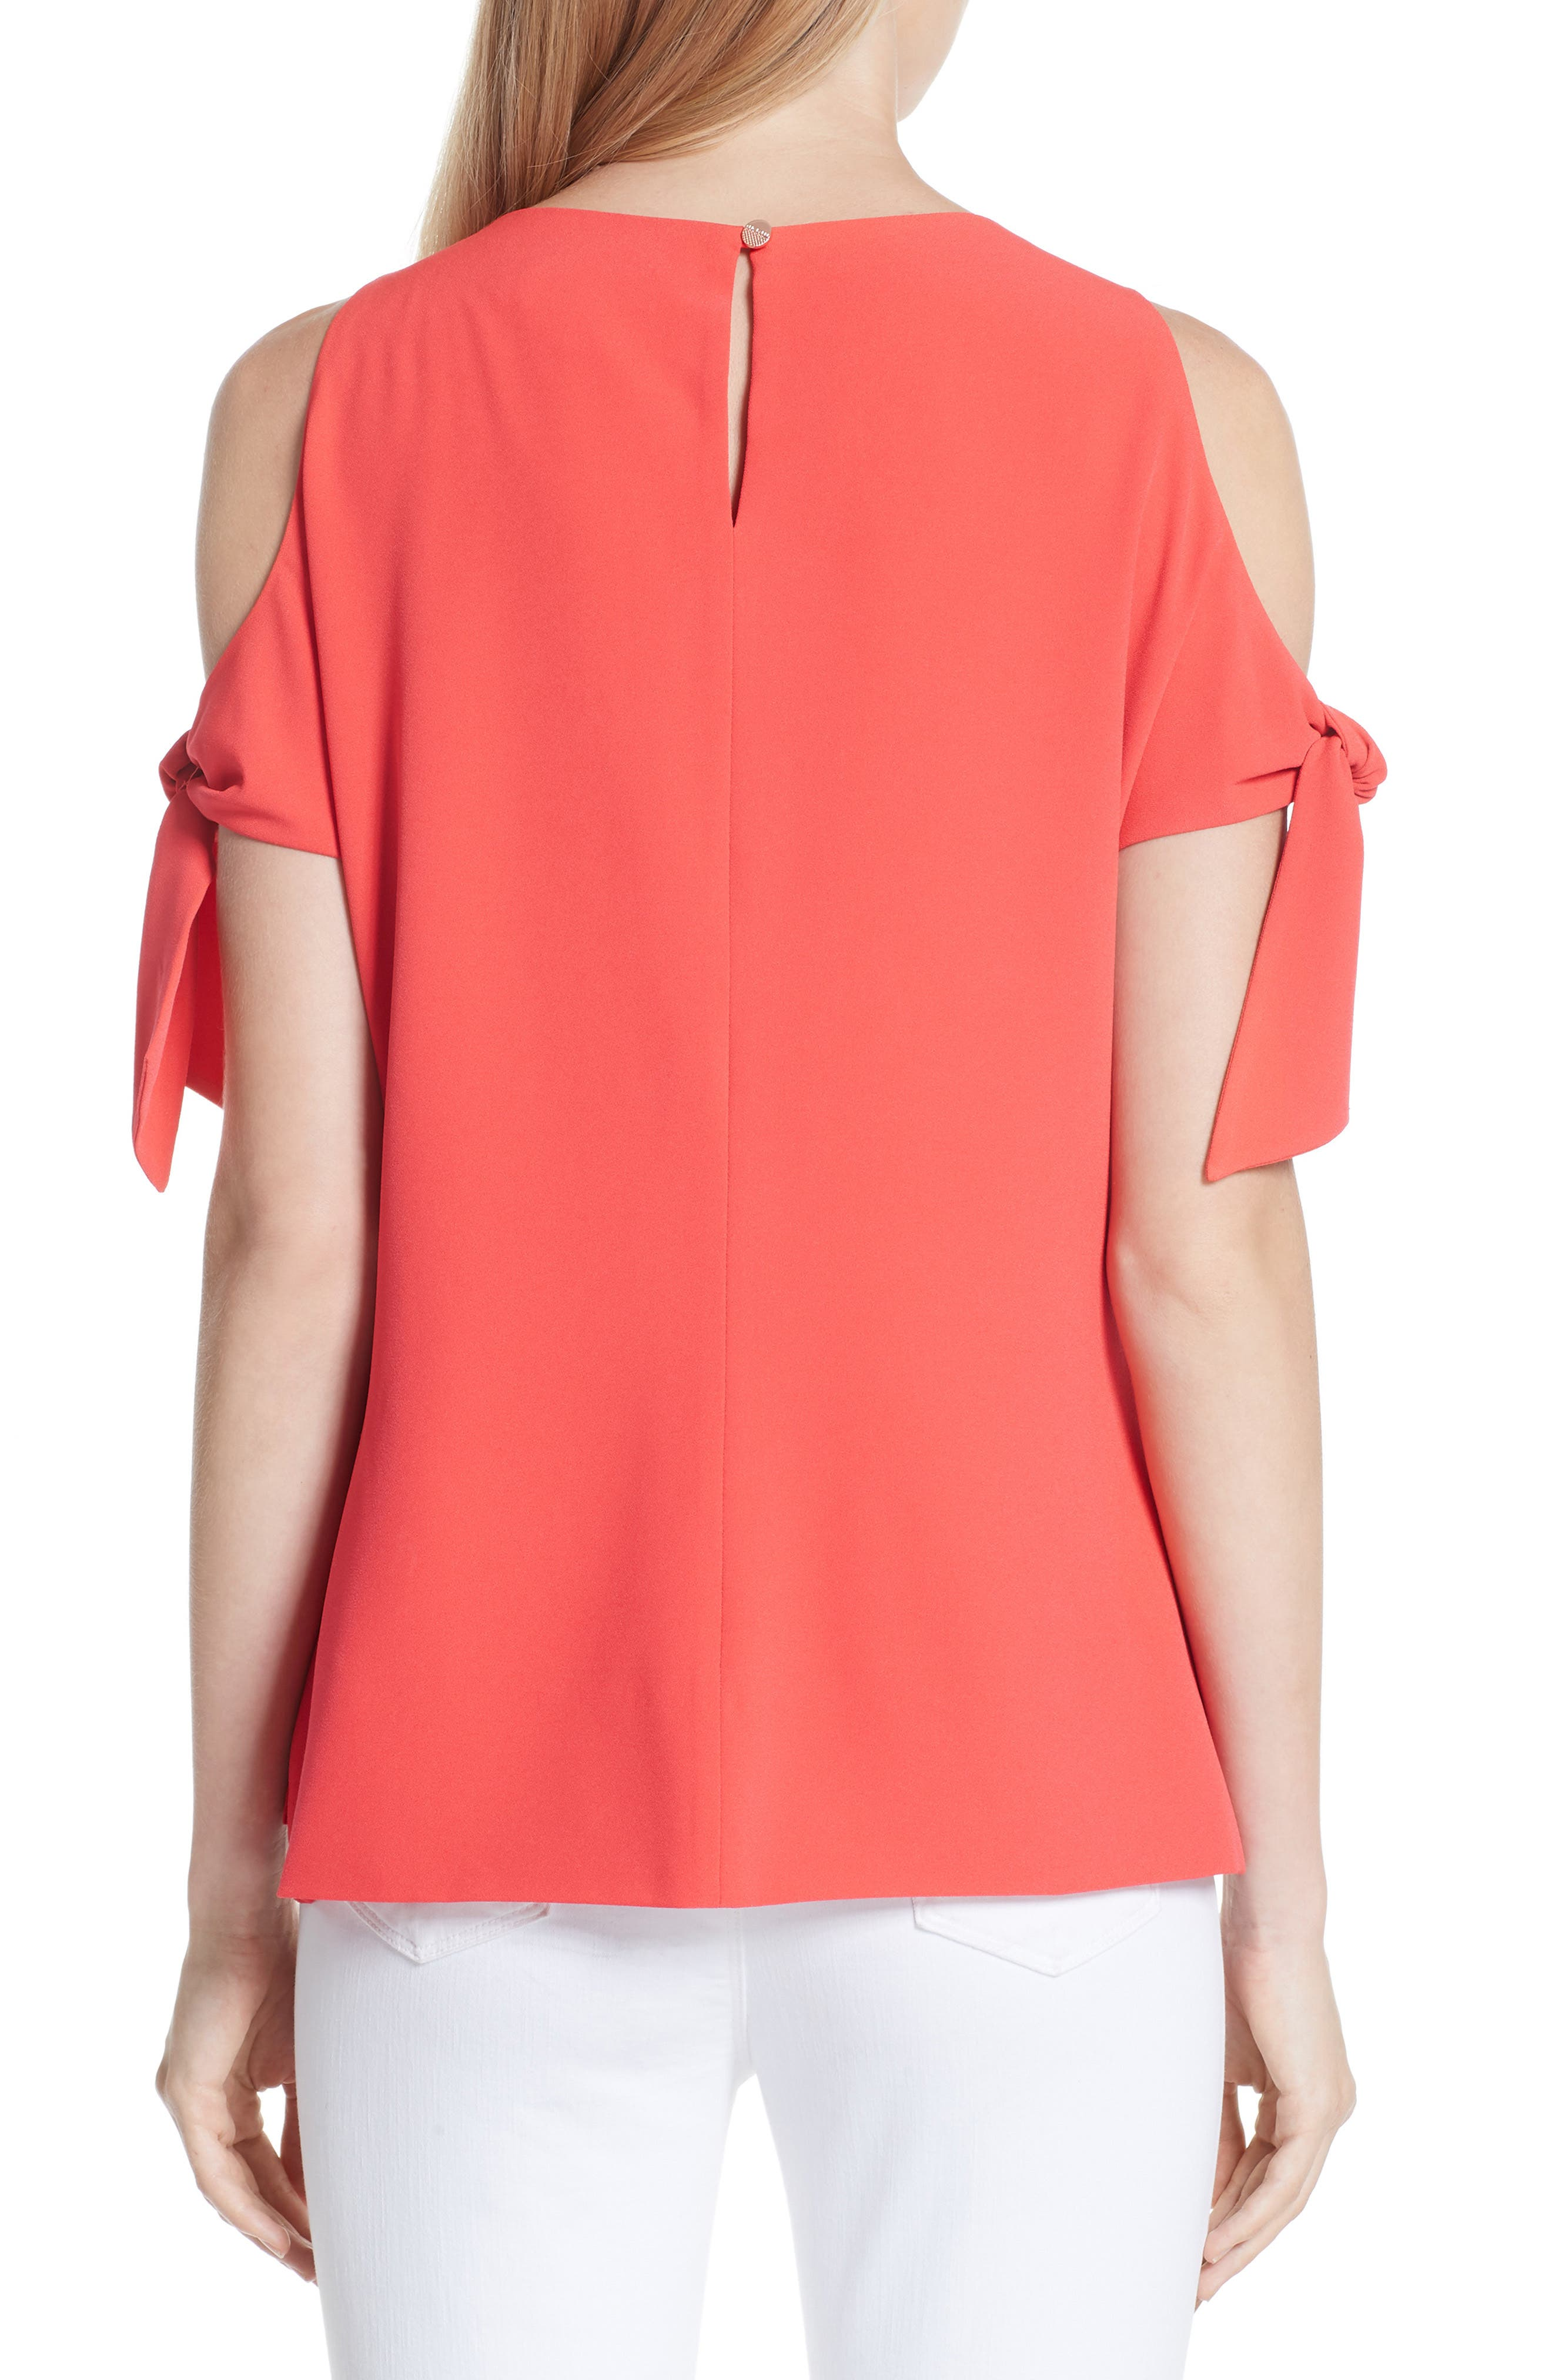 Narva Colour by Numbers Twist Cuff Shirt,                             Alternate thumbnail 4, color,